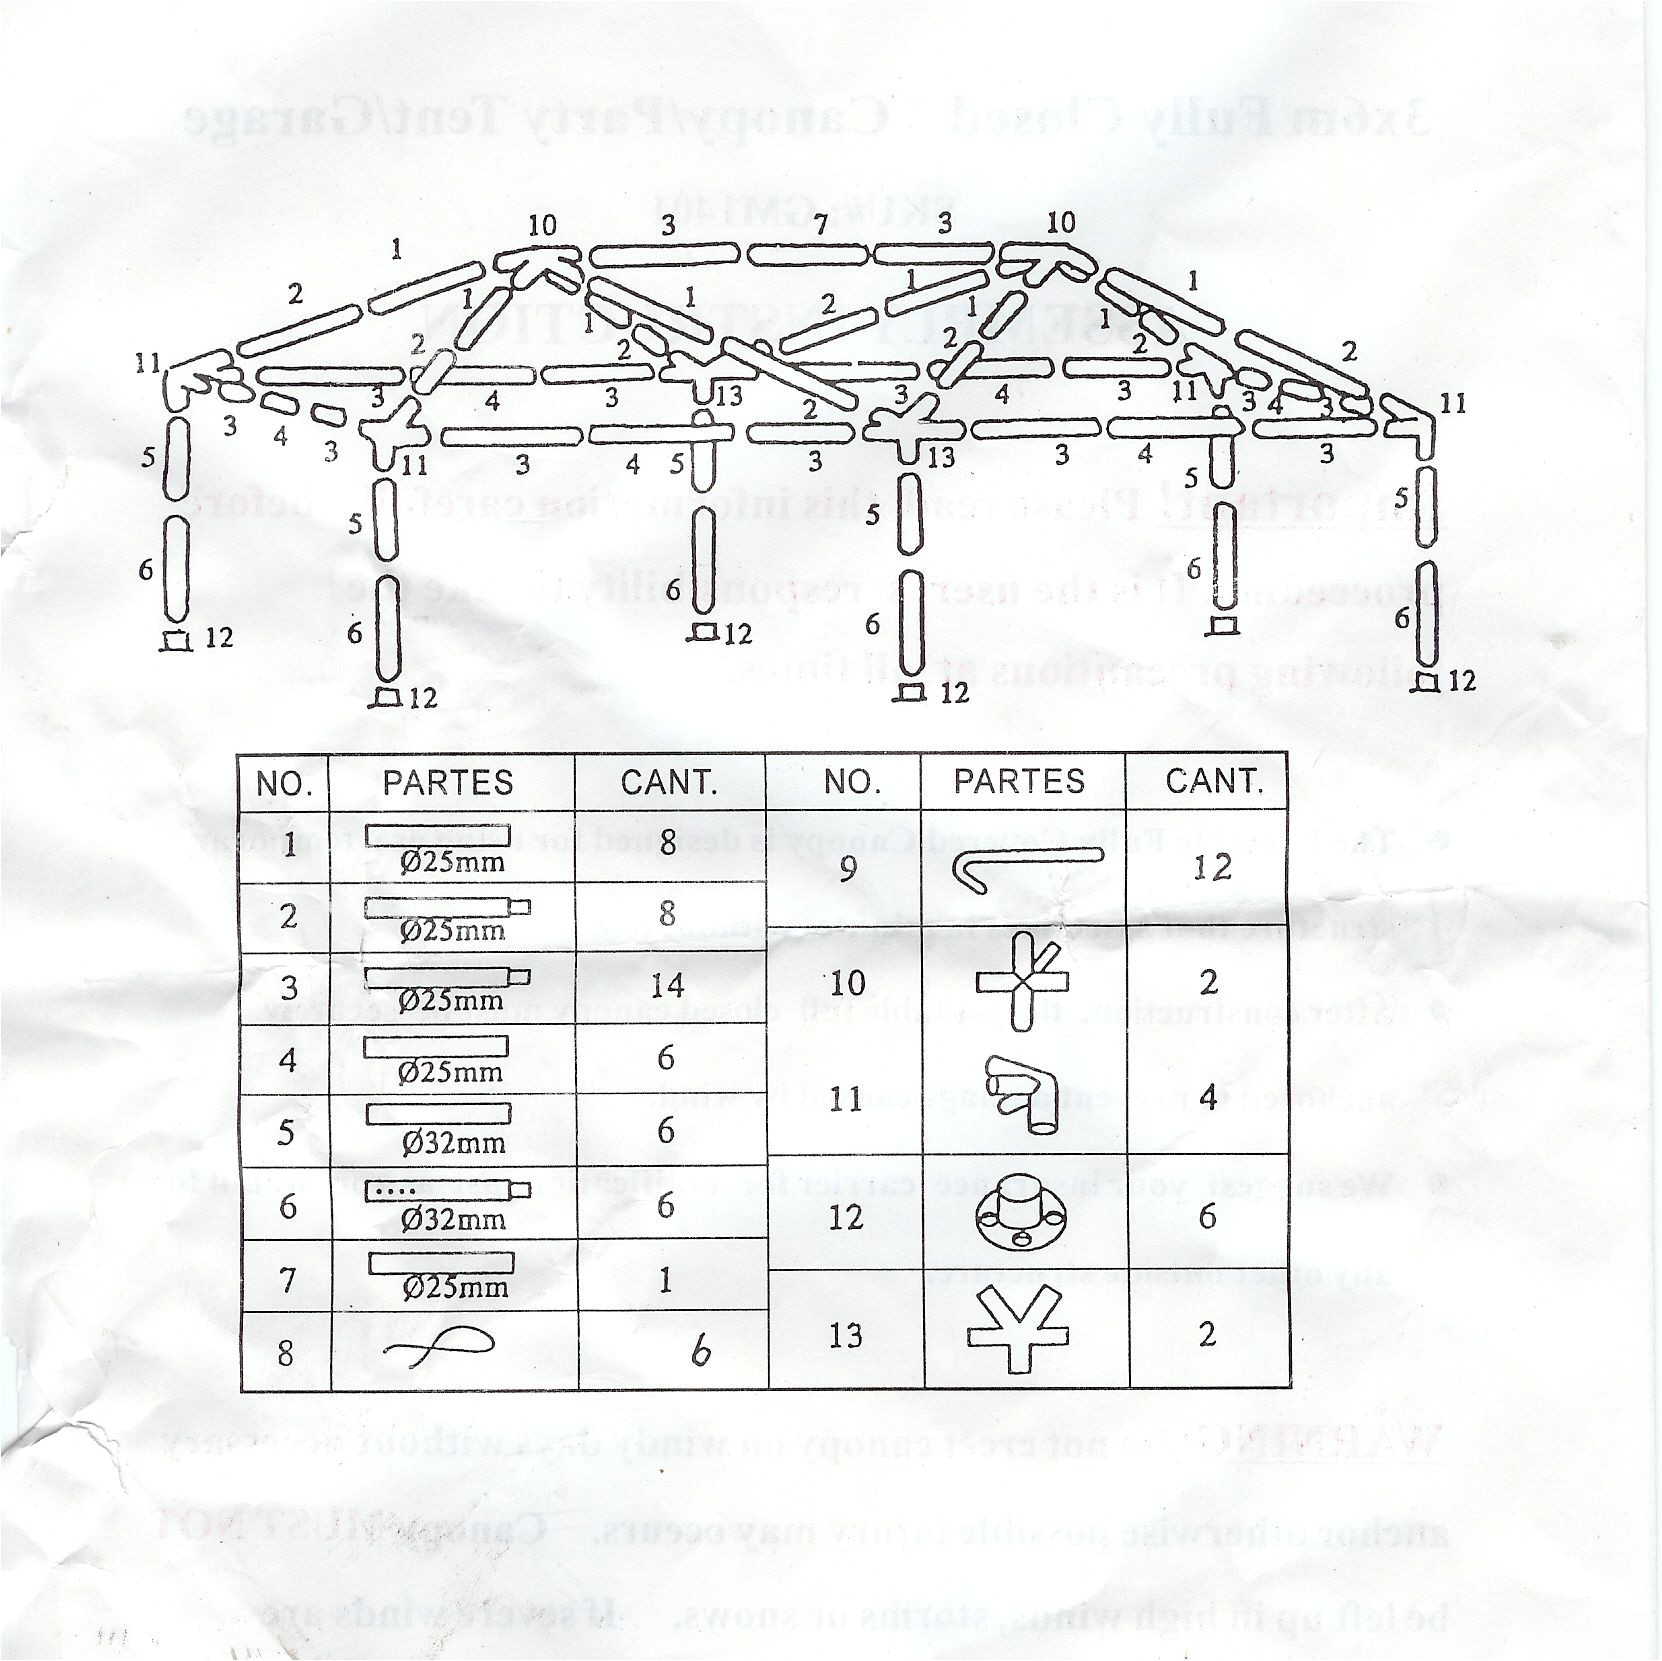 337 gazebo canopy instructions